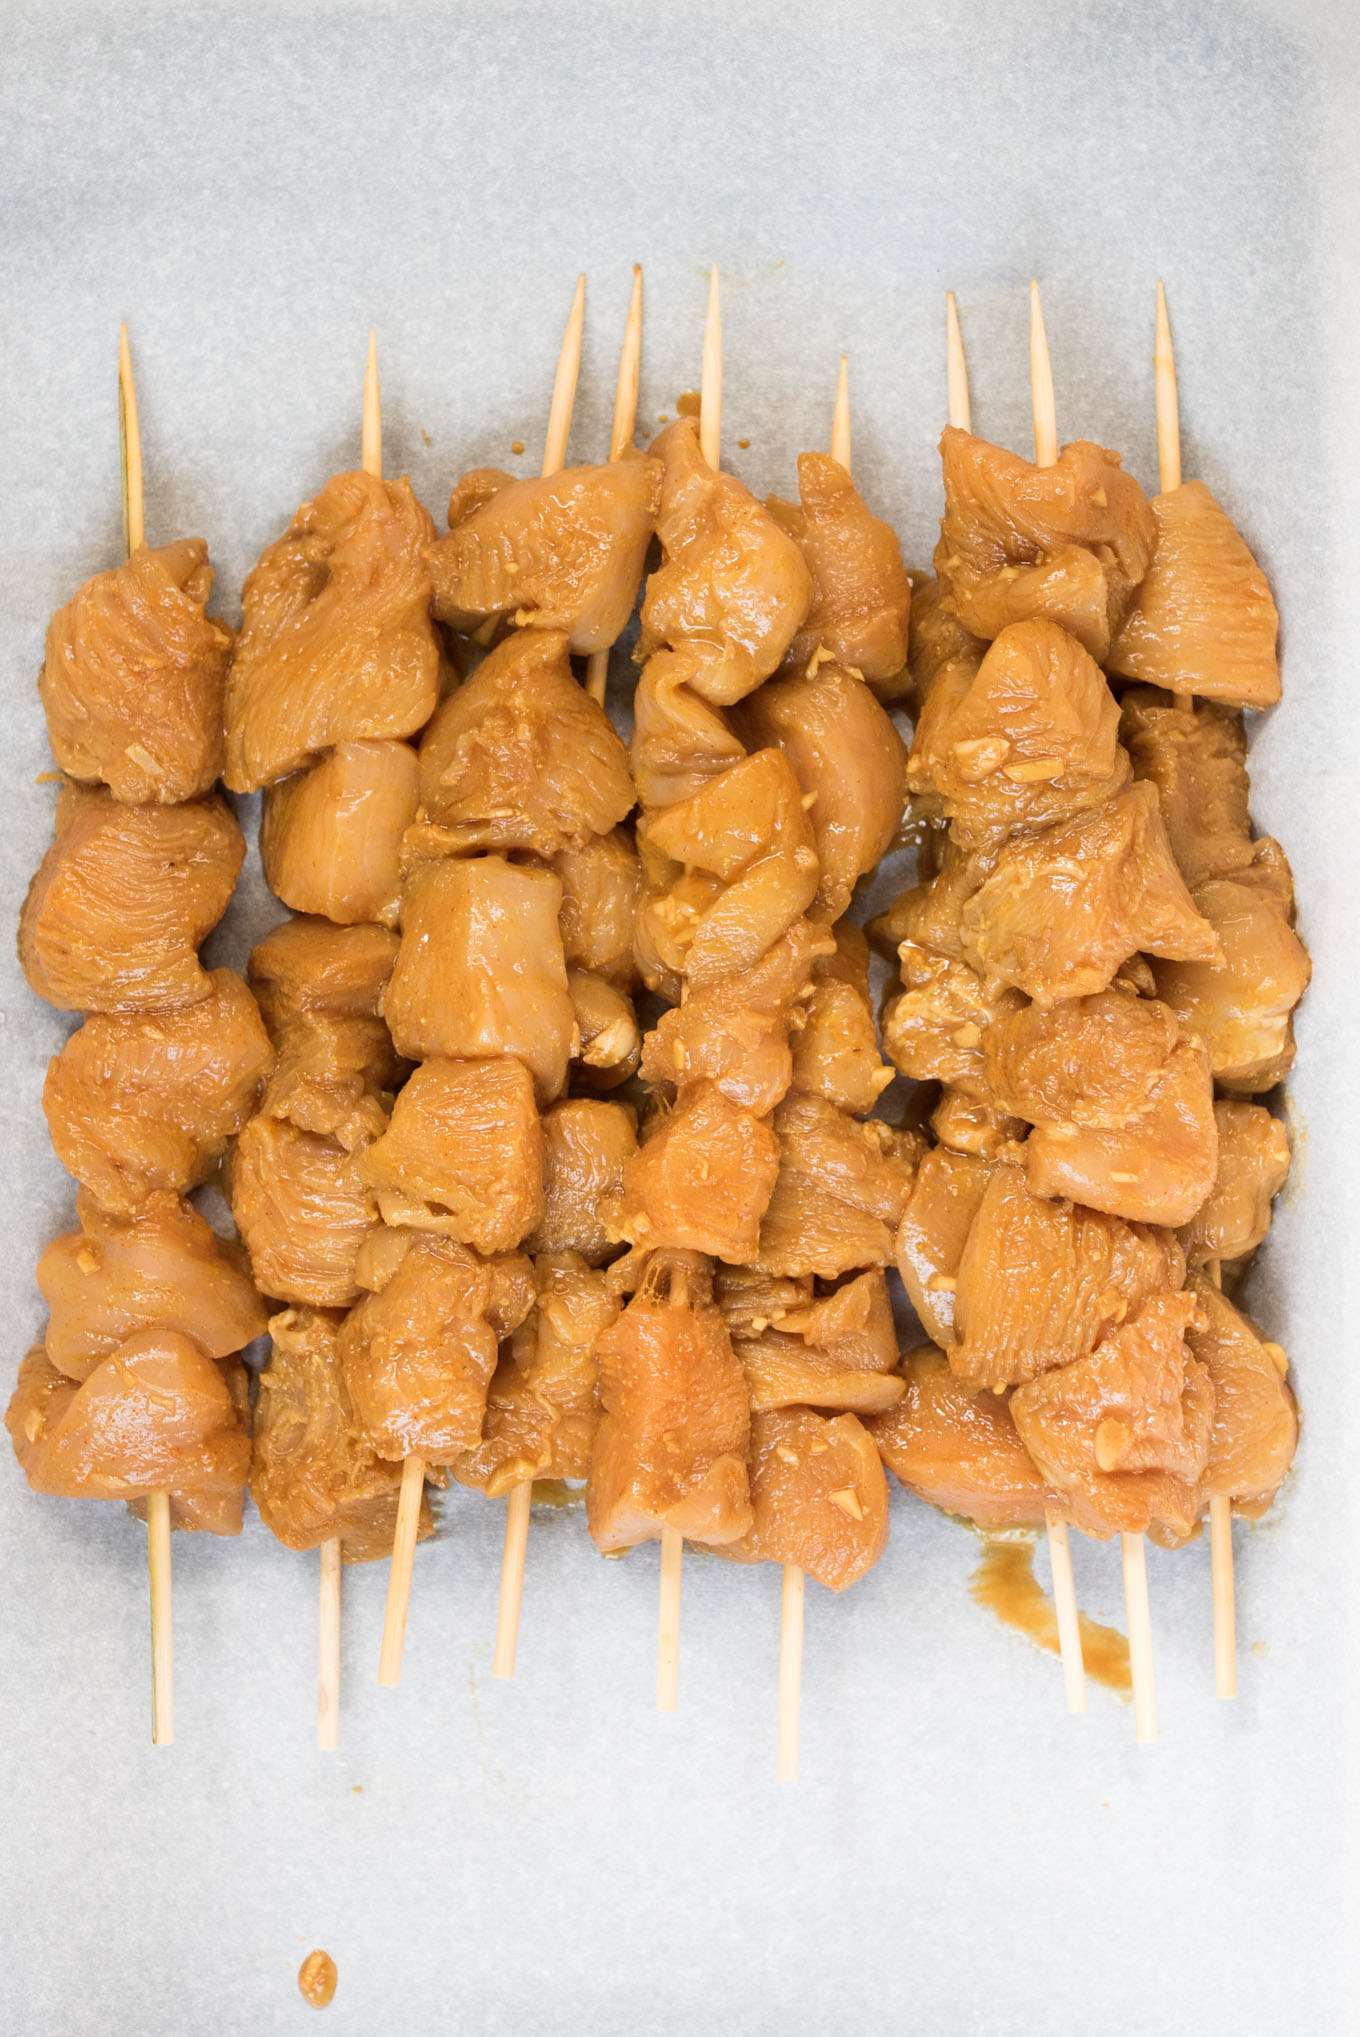 Marinated raw chicken skewers